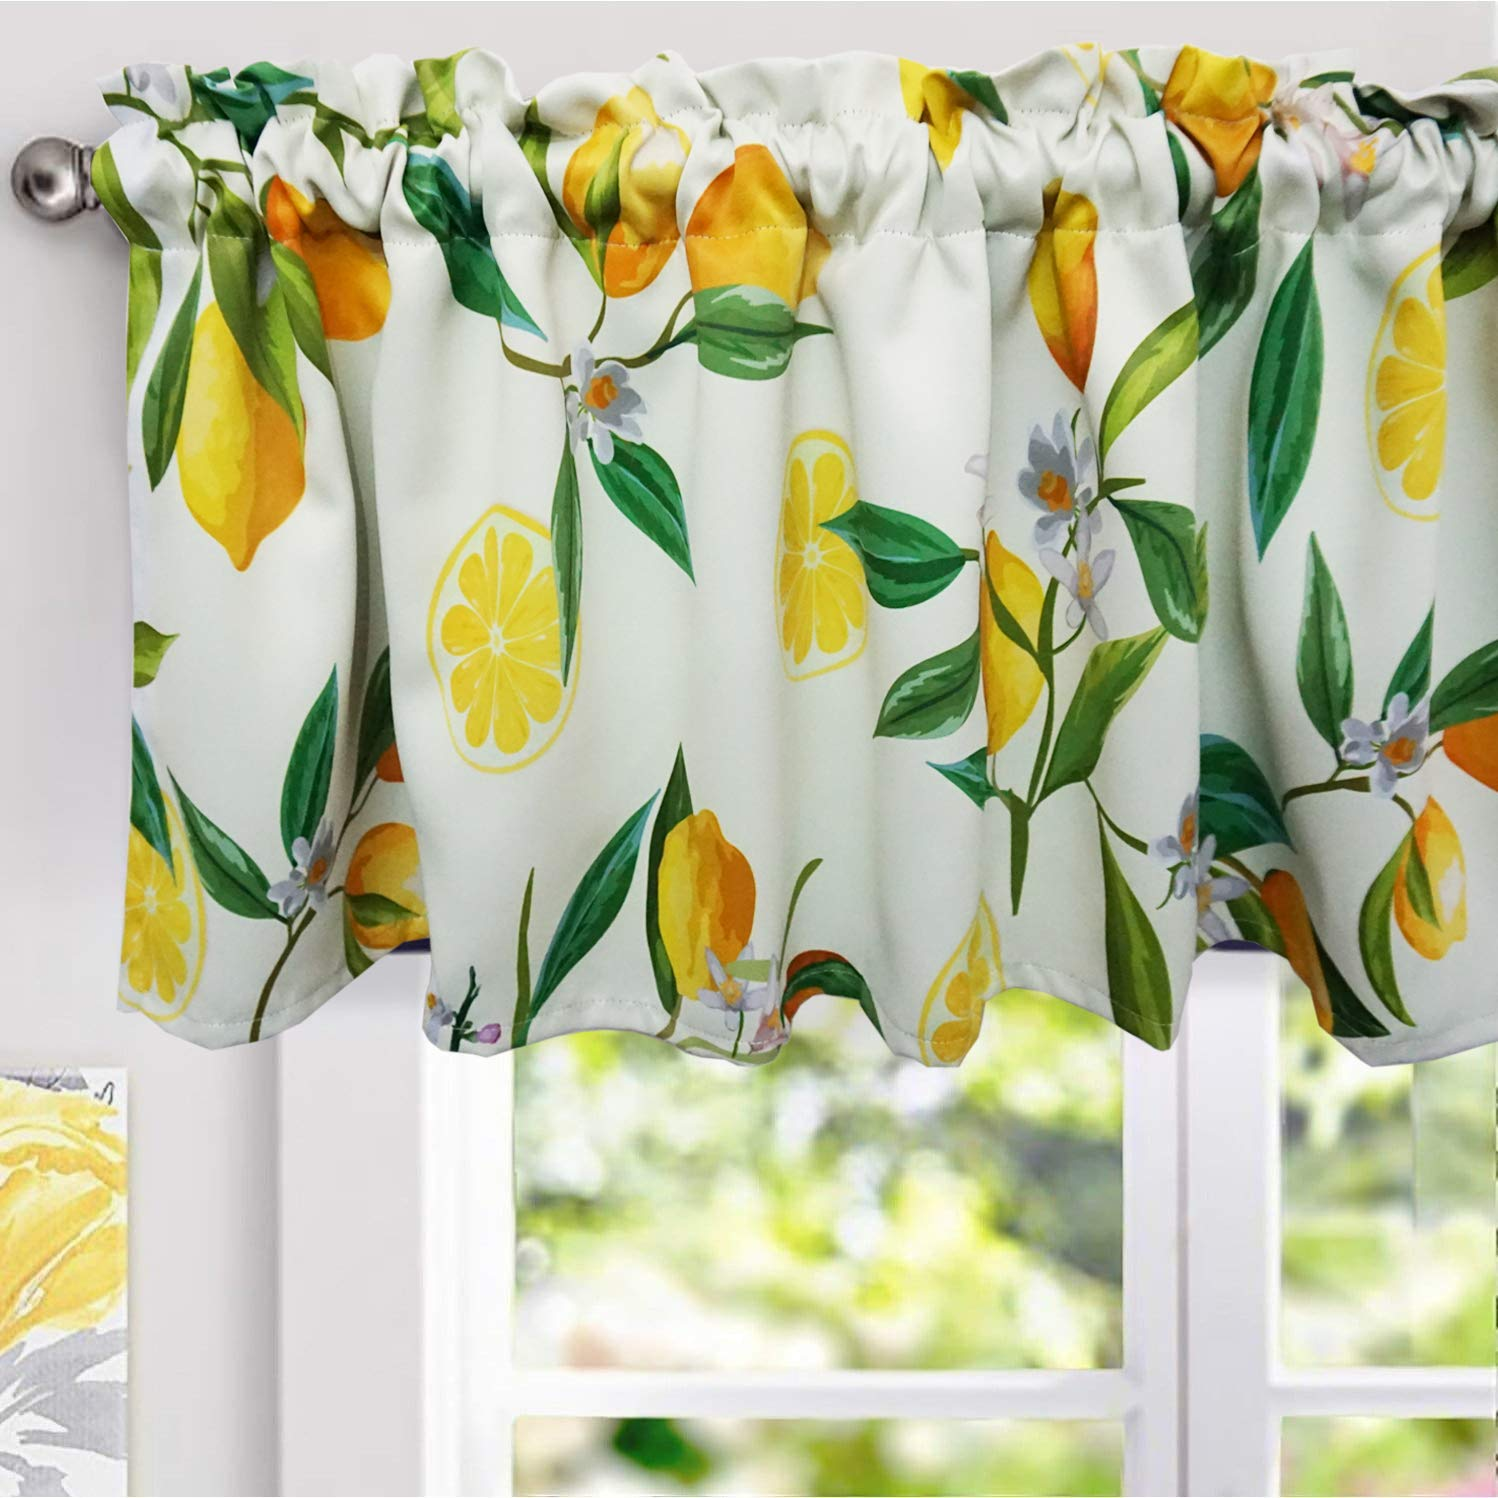 Amazon Com Yokii Lemon Valances For Windows 52 W X 18 L Room Darkening Vintage Floral Curtain Valance Window Treatments For Kitchen Bathroom Living Room Decors W52 X L18 Yellow Kitchen Dining